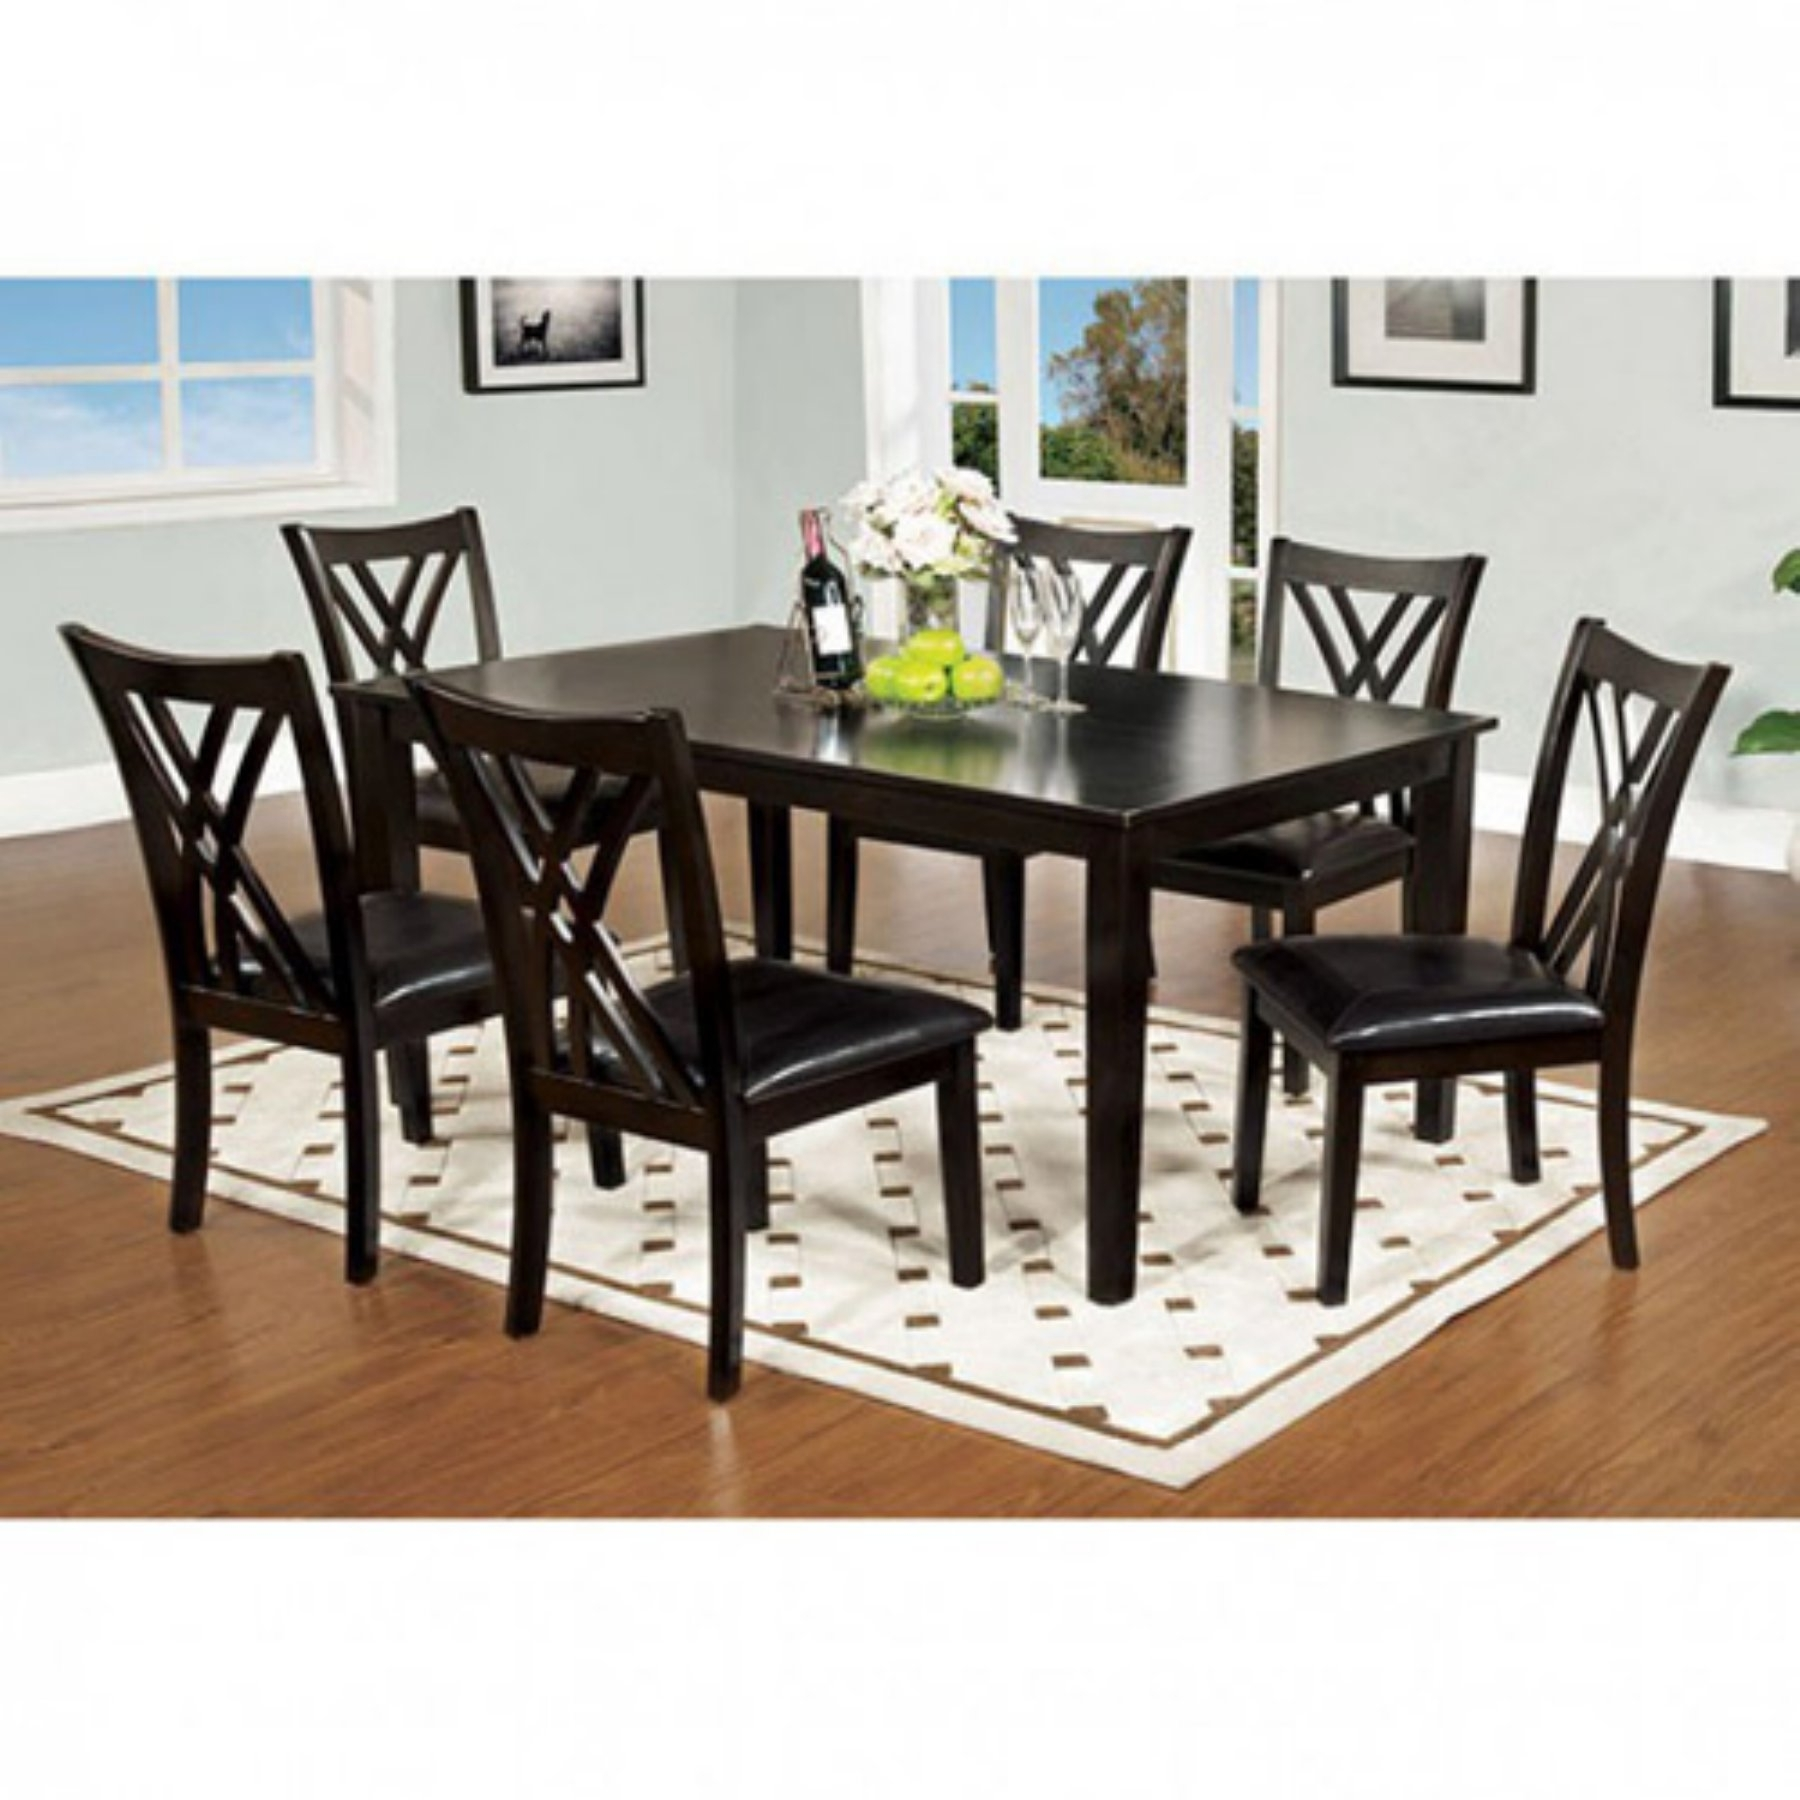 Benzara Springhill Enticing 7 Piece Rectangular Dining Table Set In With Most Current Market 7 Piece Dining Sets With Host And Side Chairs (View 12 of 20)